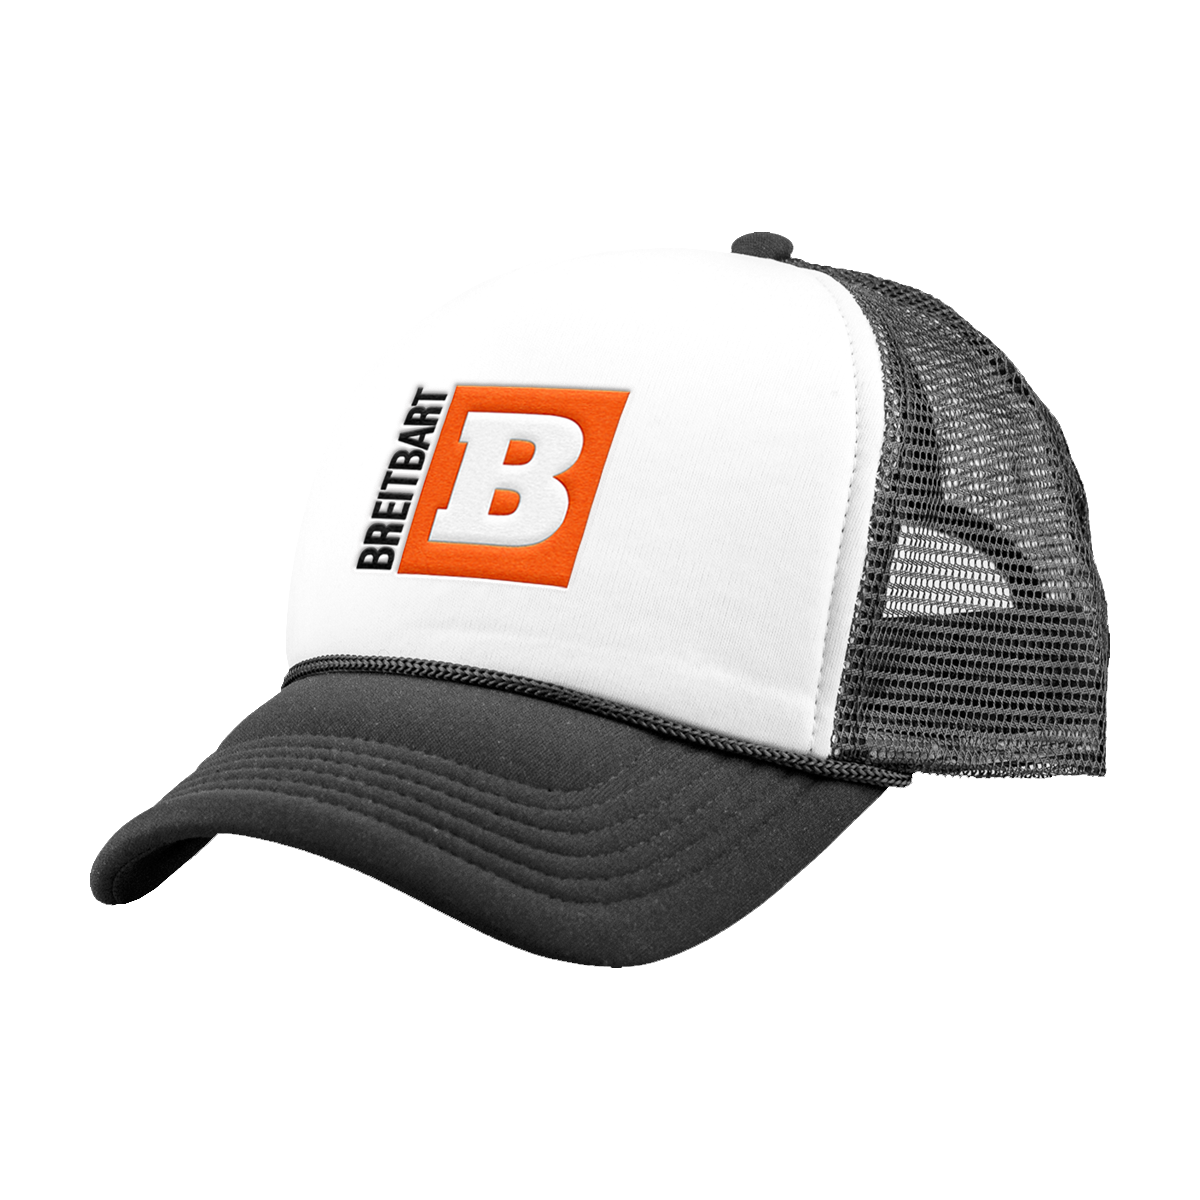 Iconic Breitbart Logo Hat - Black